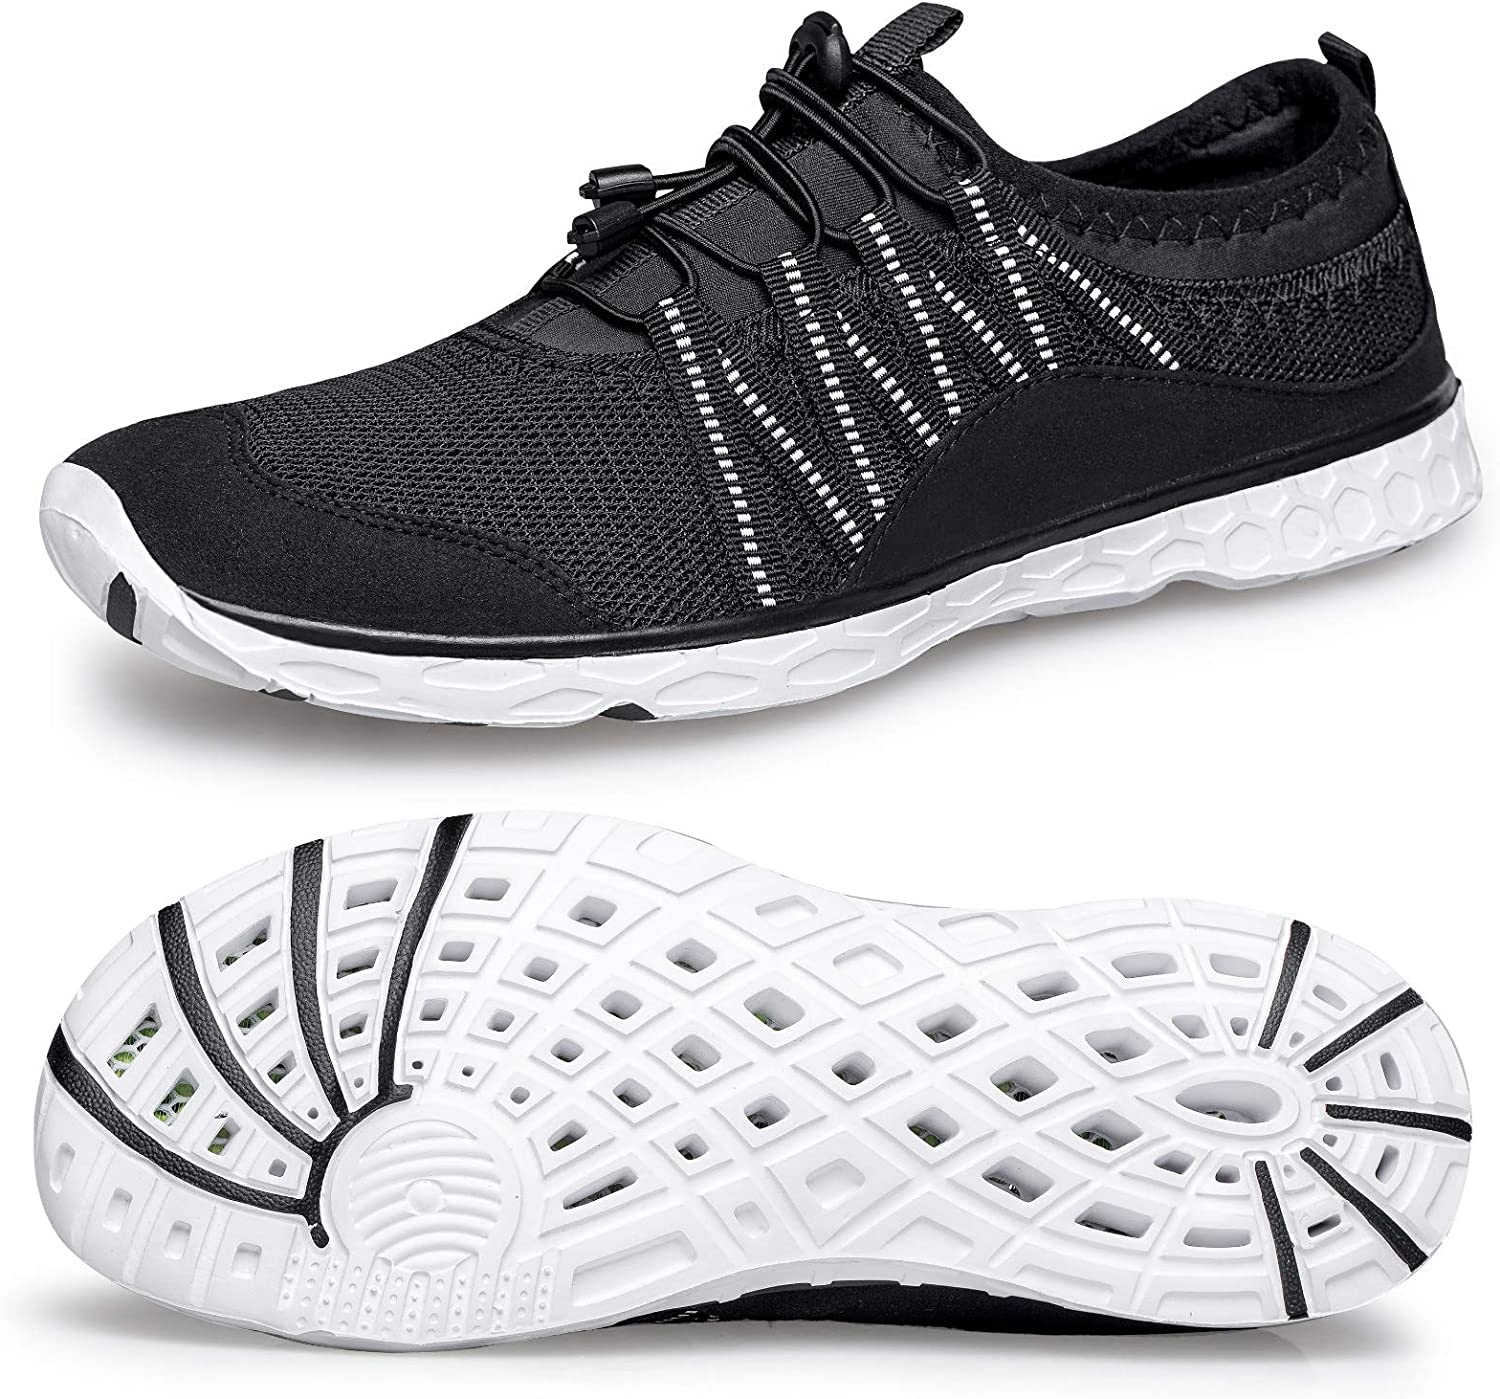 Alibress Men's Water 70% OFF Outlet Shoes Lightweight Aqua Dry Limited price Beach Quick Shoe